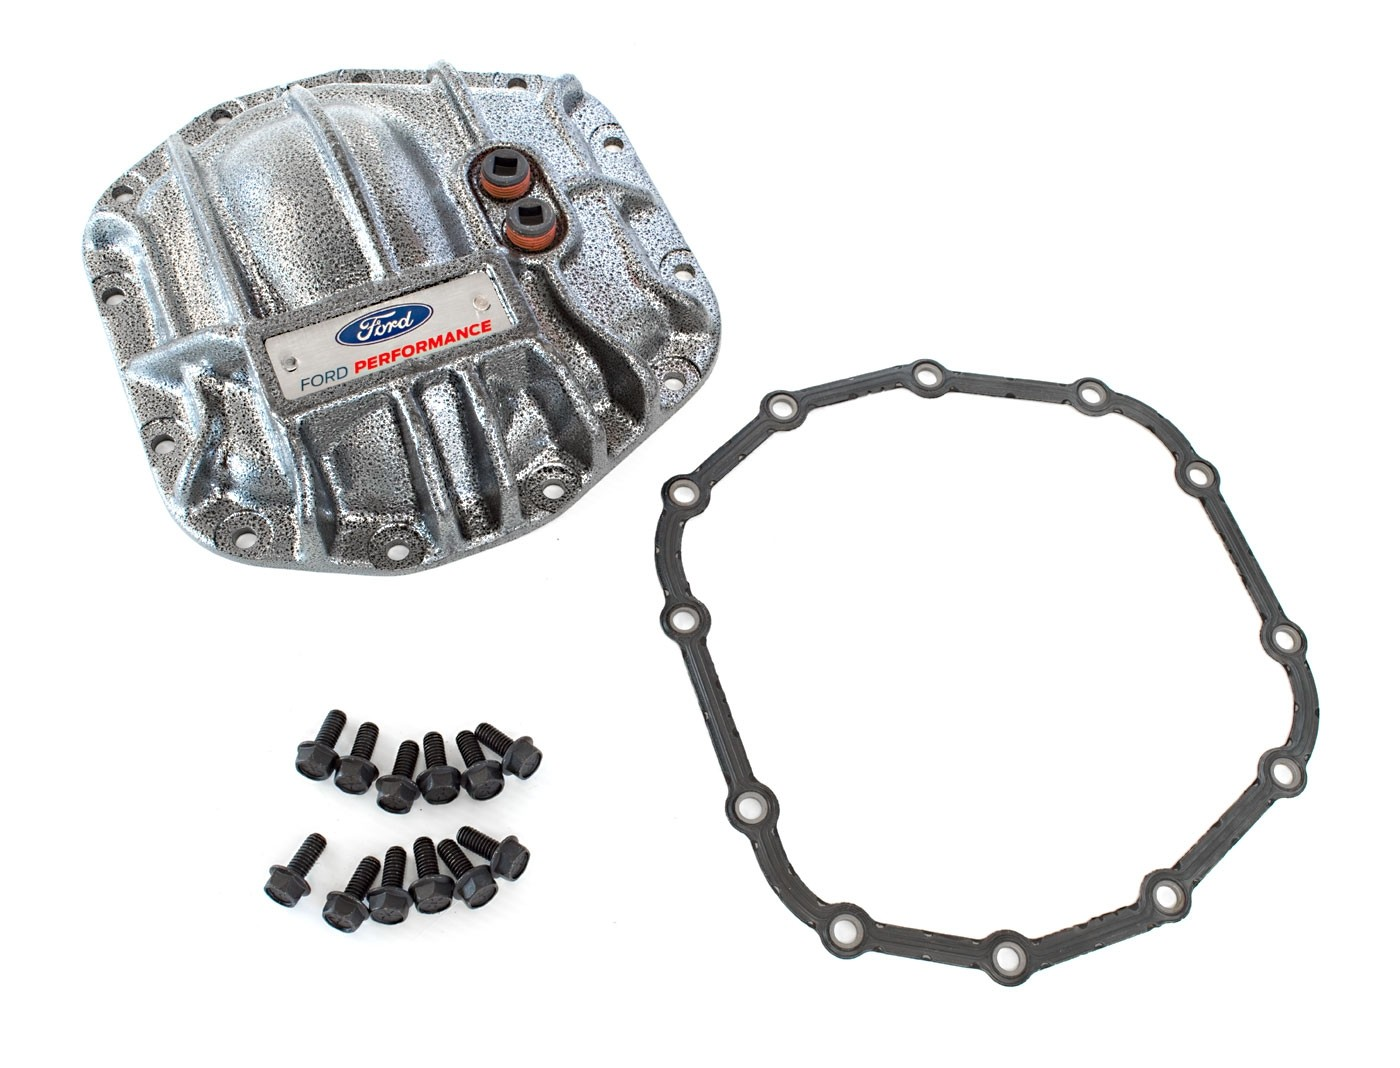 2019-2020 Ranger Truck Ford Performance M-4033-R Rear End Differential Axle Girdle Cover Kit